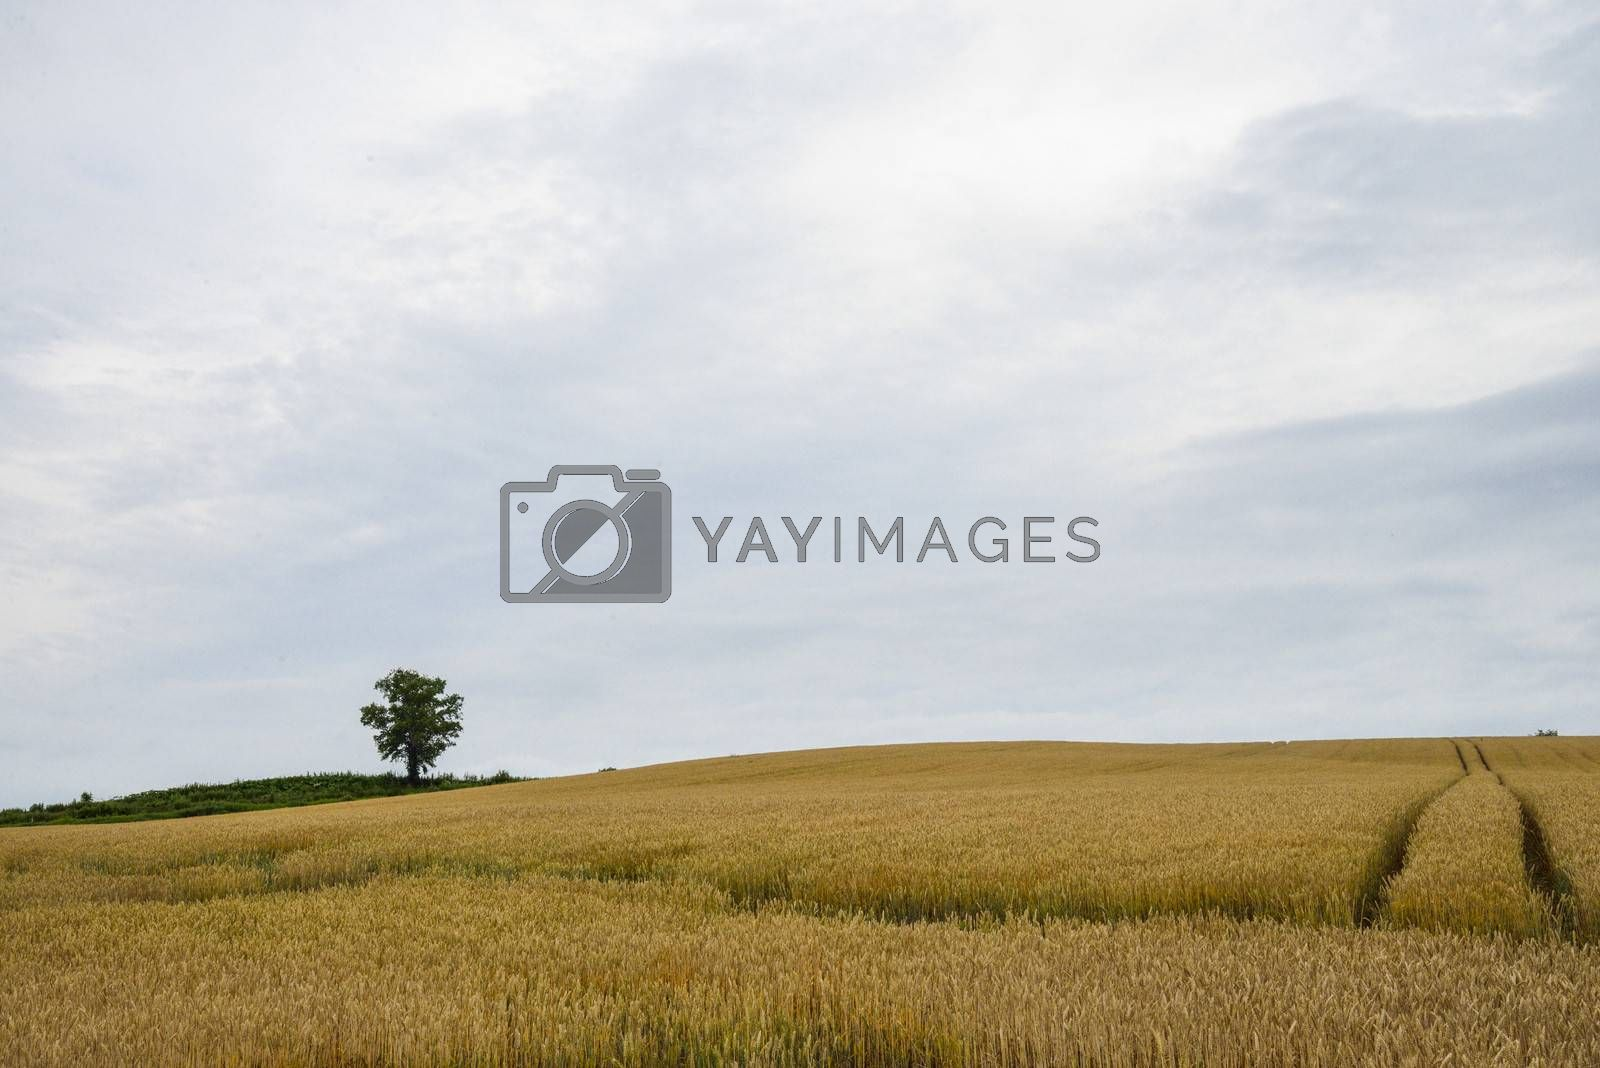 Parents and child tree in barley field3